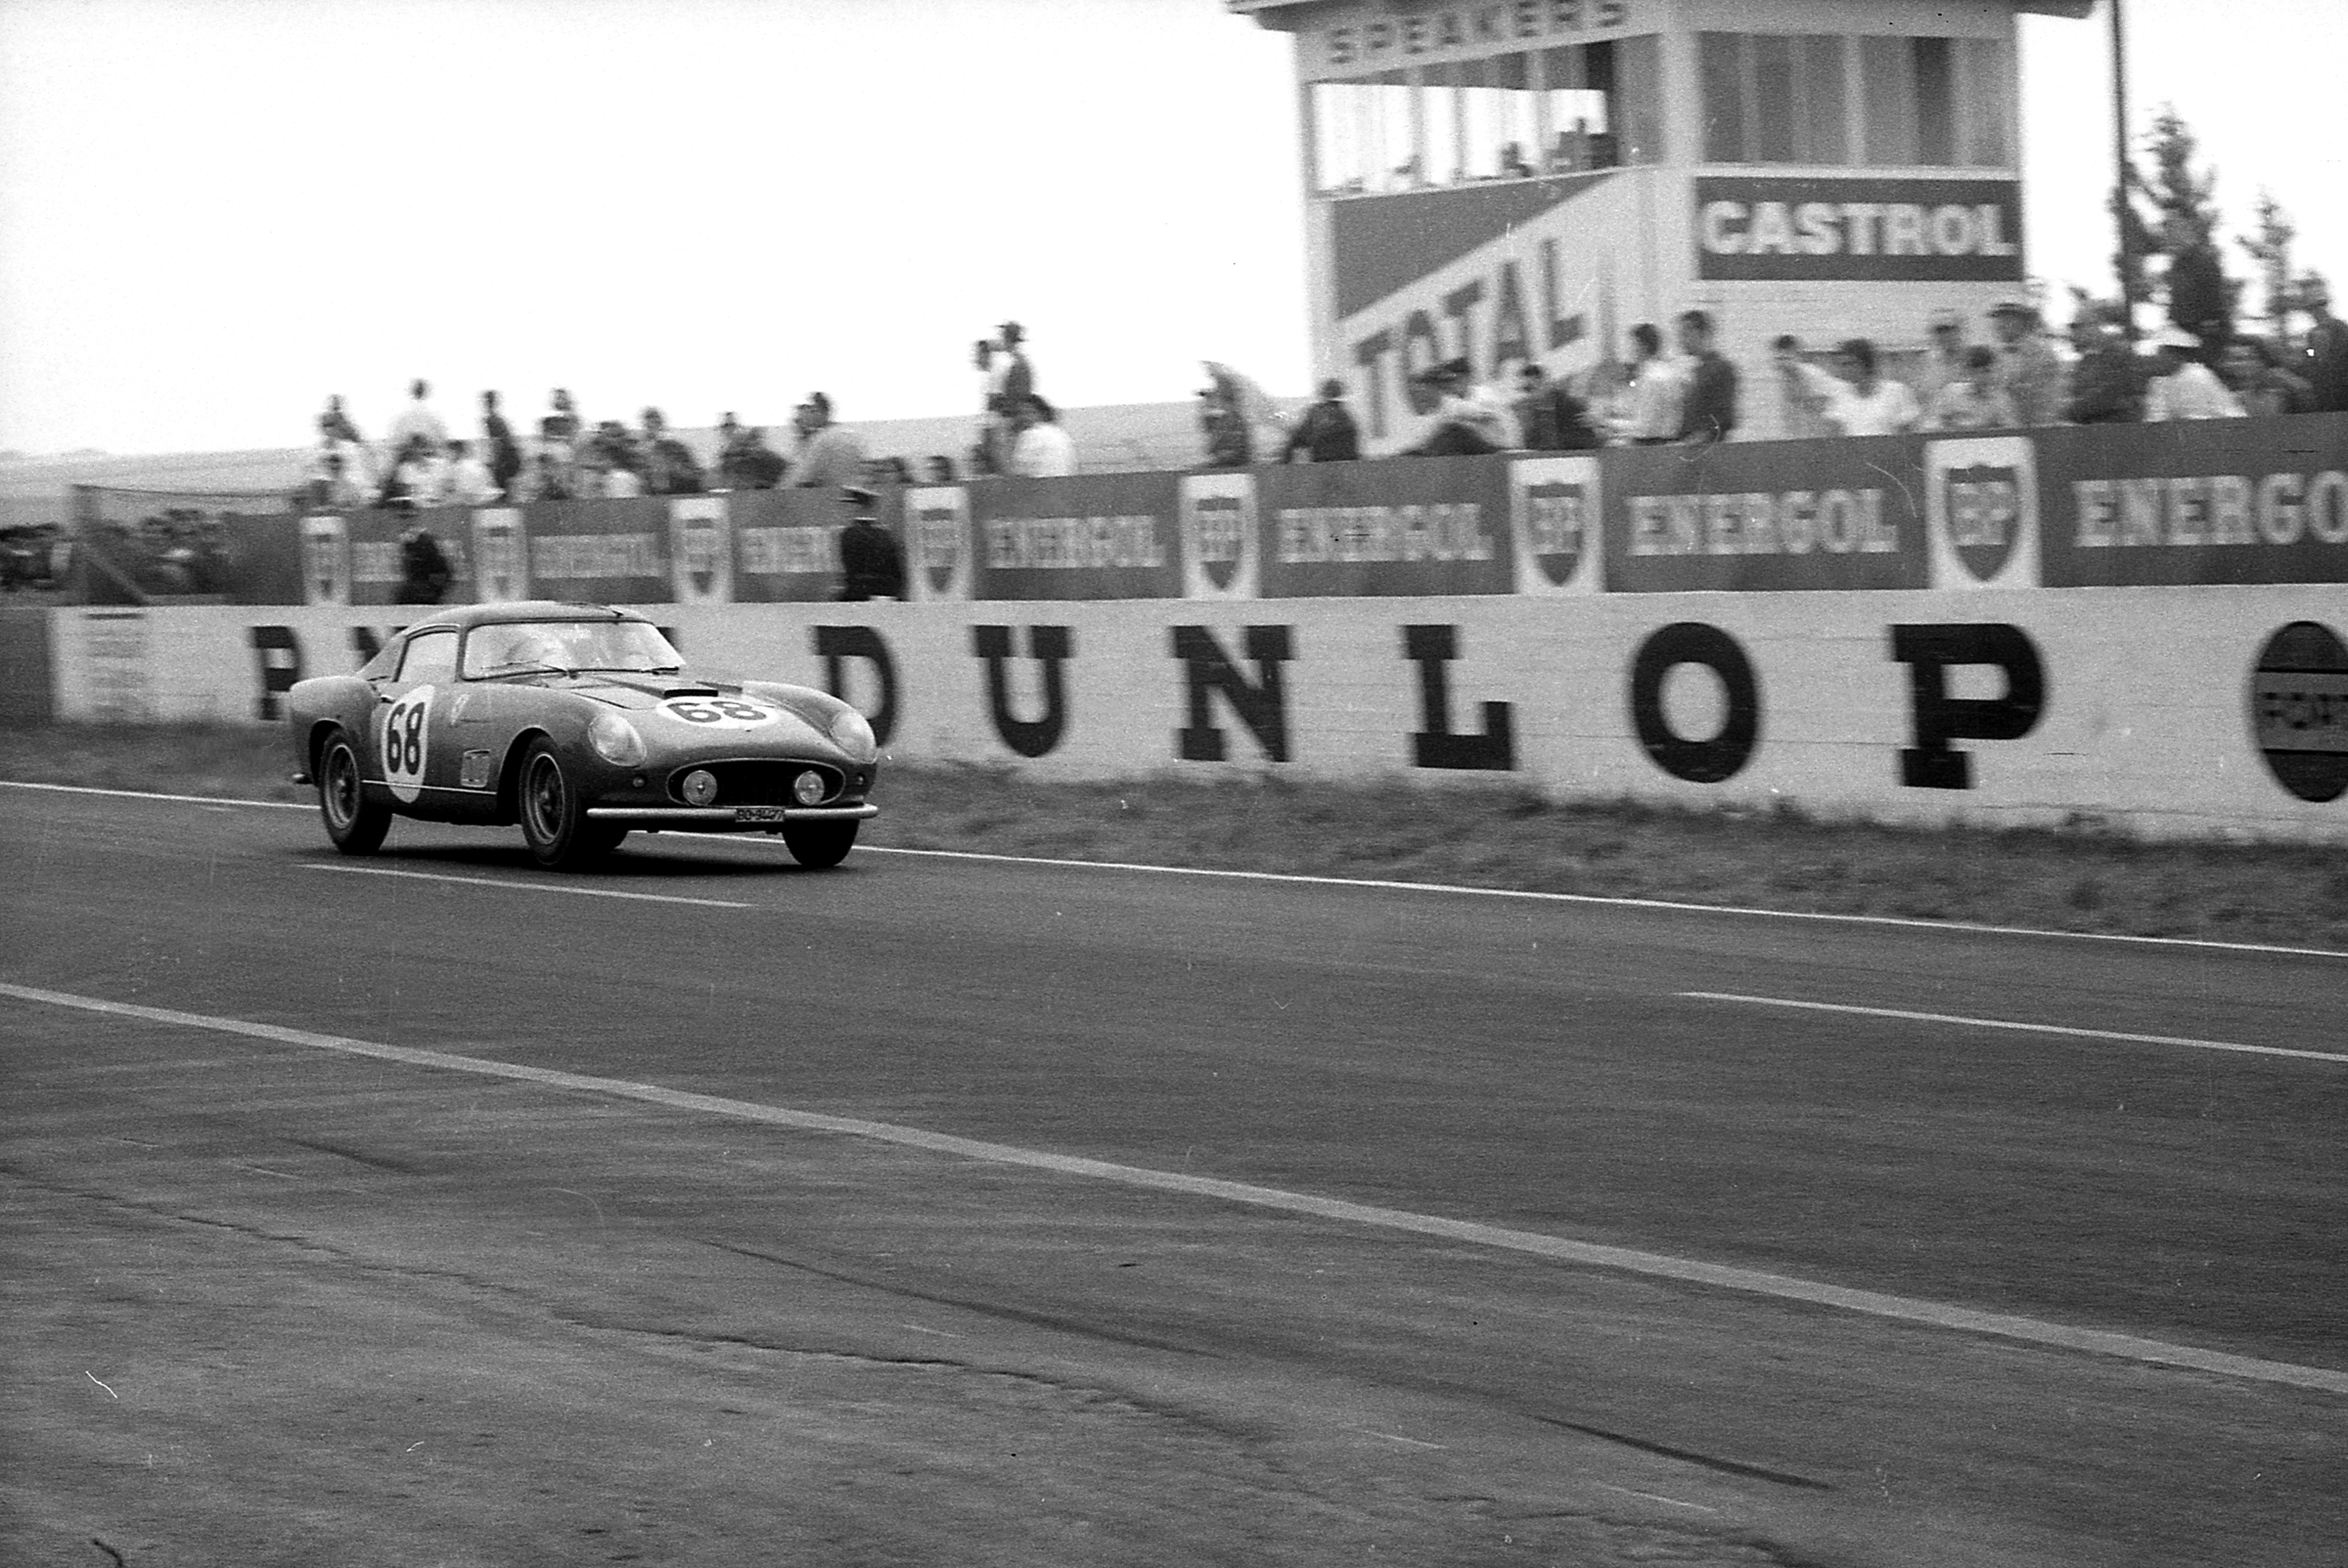 RM Sotheby's - Period image 2 (racing) Wolfgang Seidel behind the wheel of 0879 GT at the 1958 12 Hours of Reims. Courtesy of The GP Library